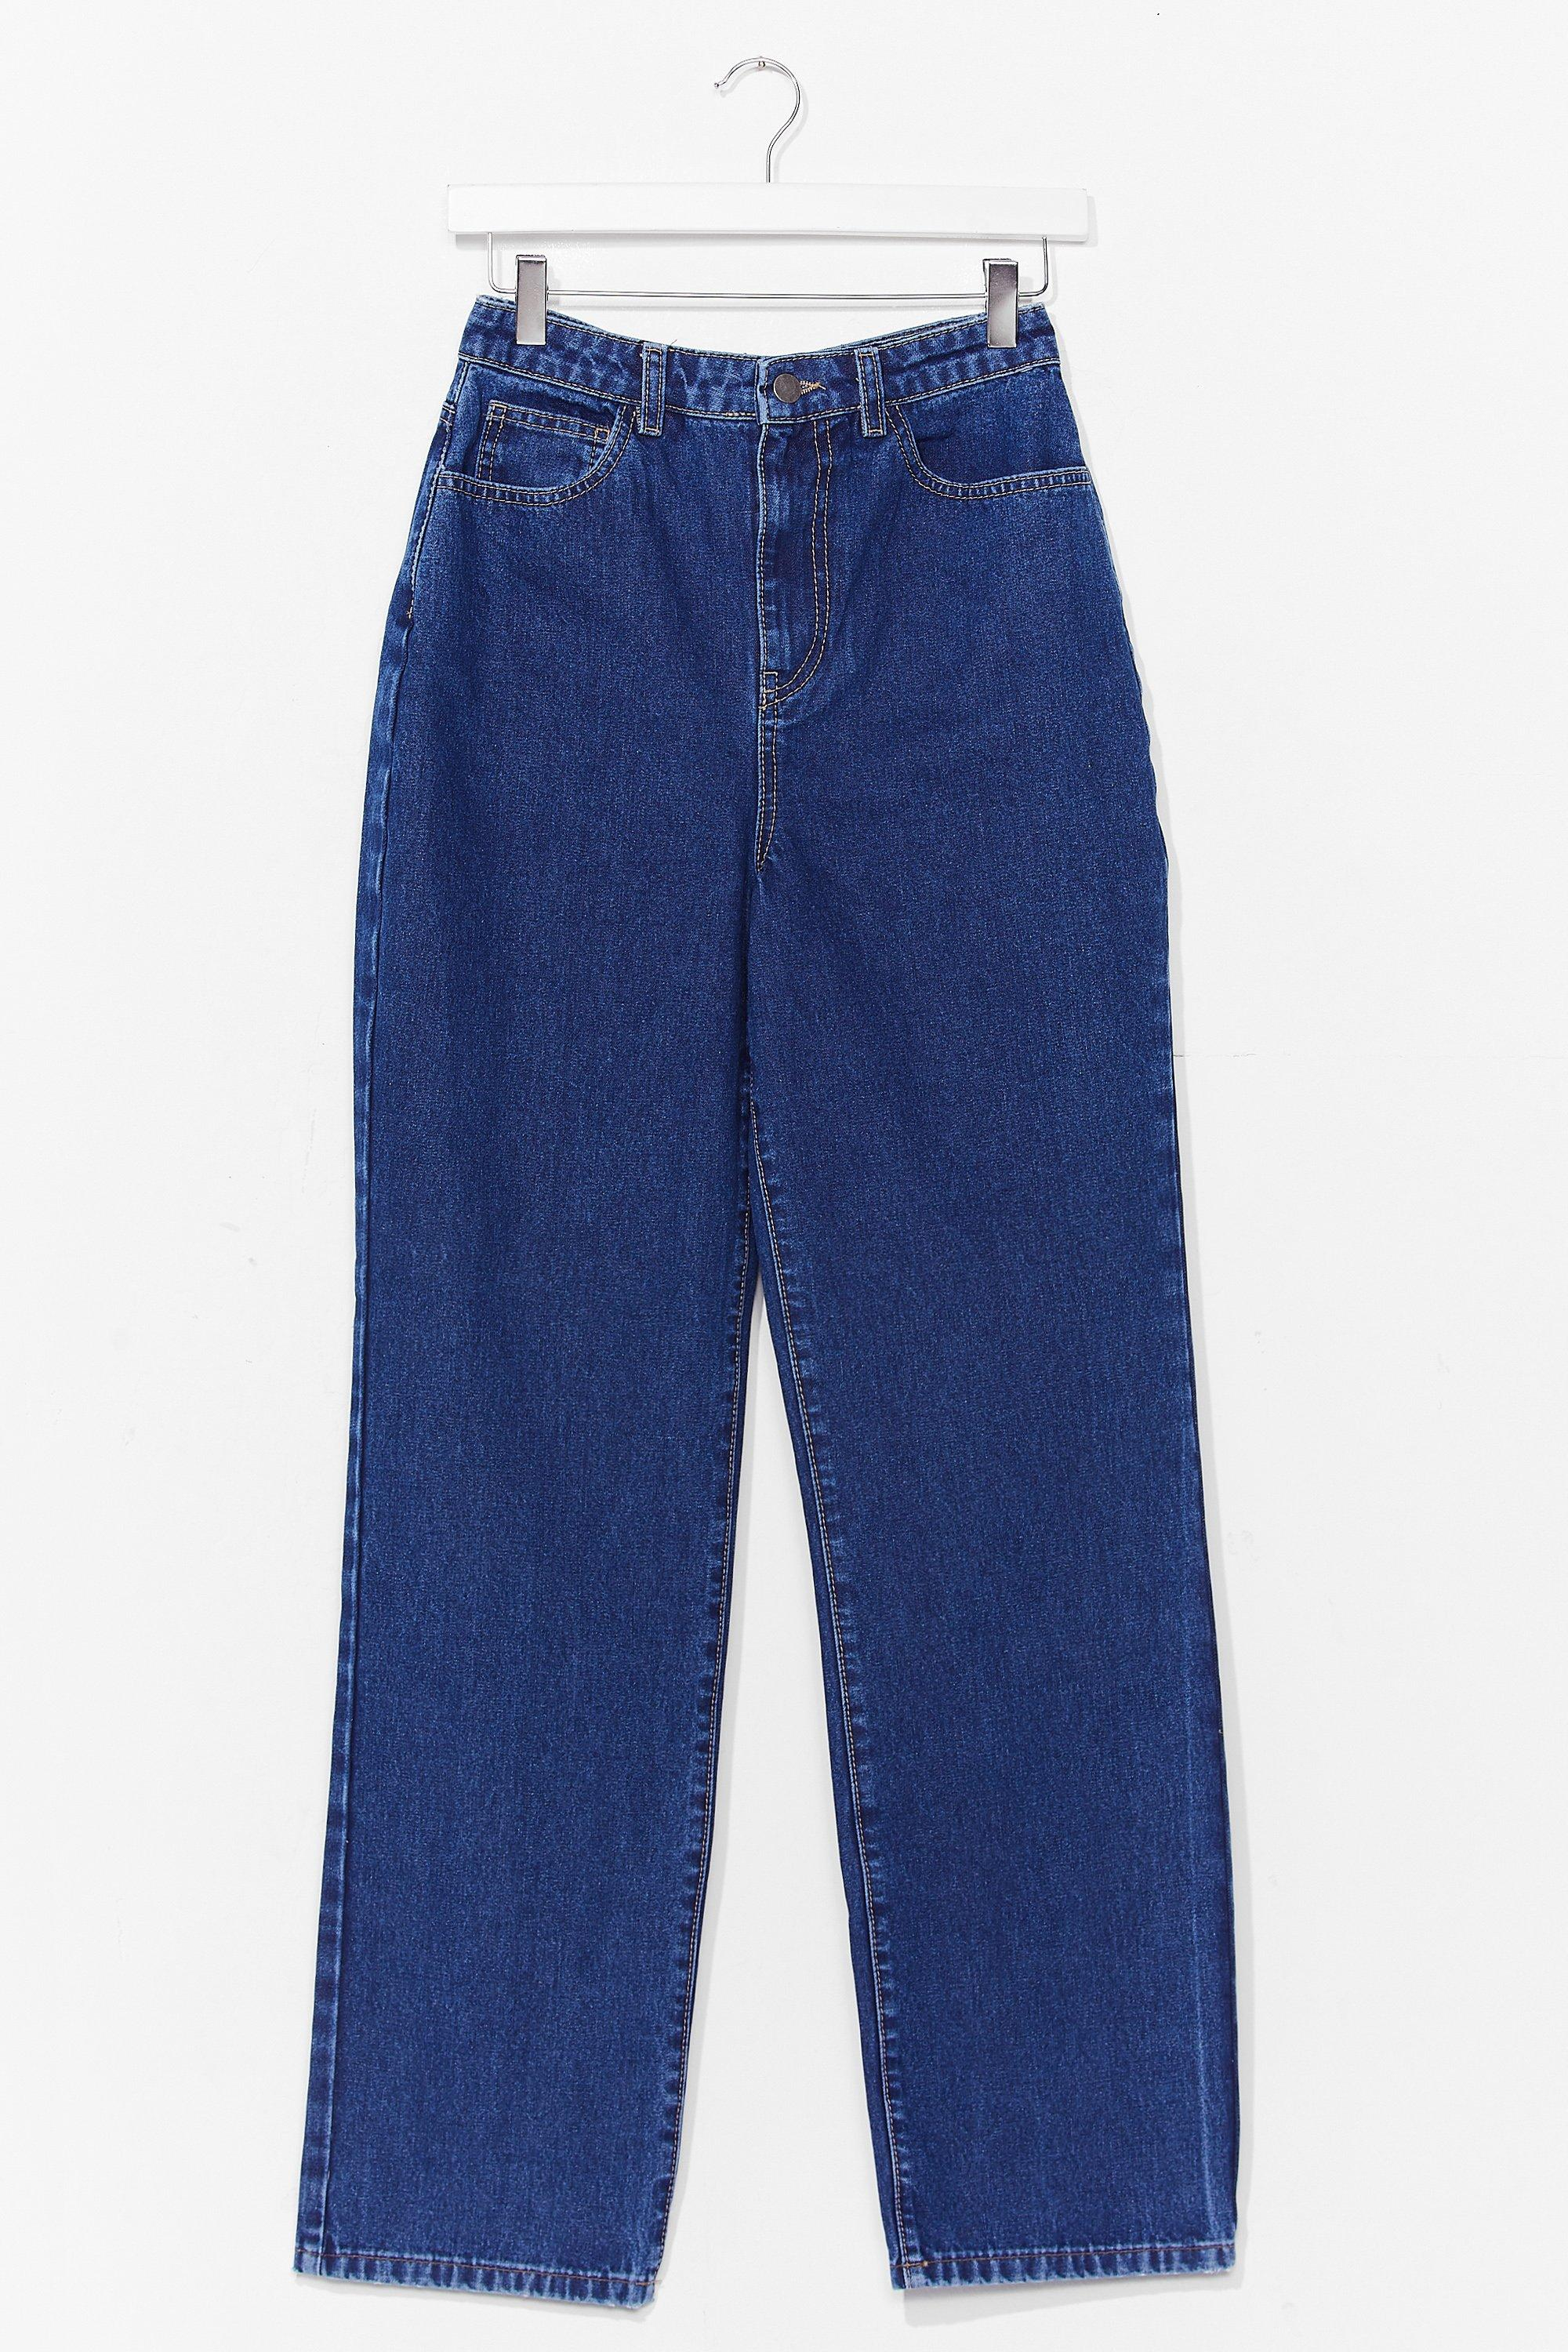 Image of Womens A Real Straight Leg High-Waisted Jeans - Dark Blue